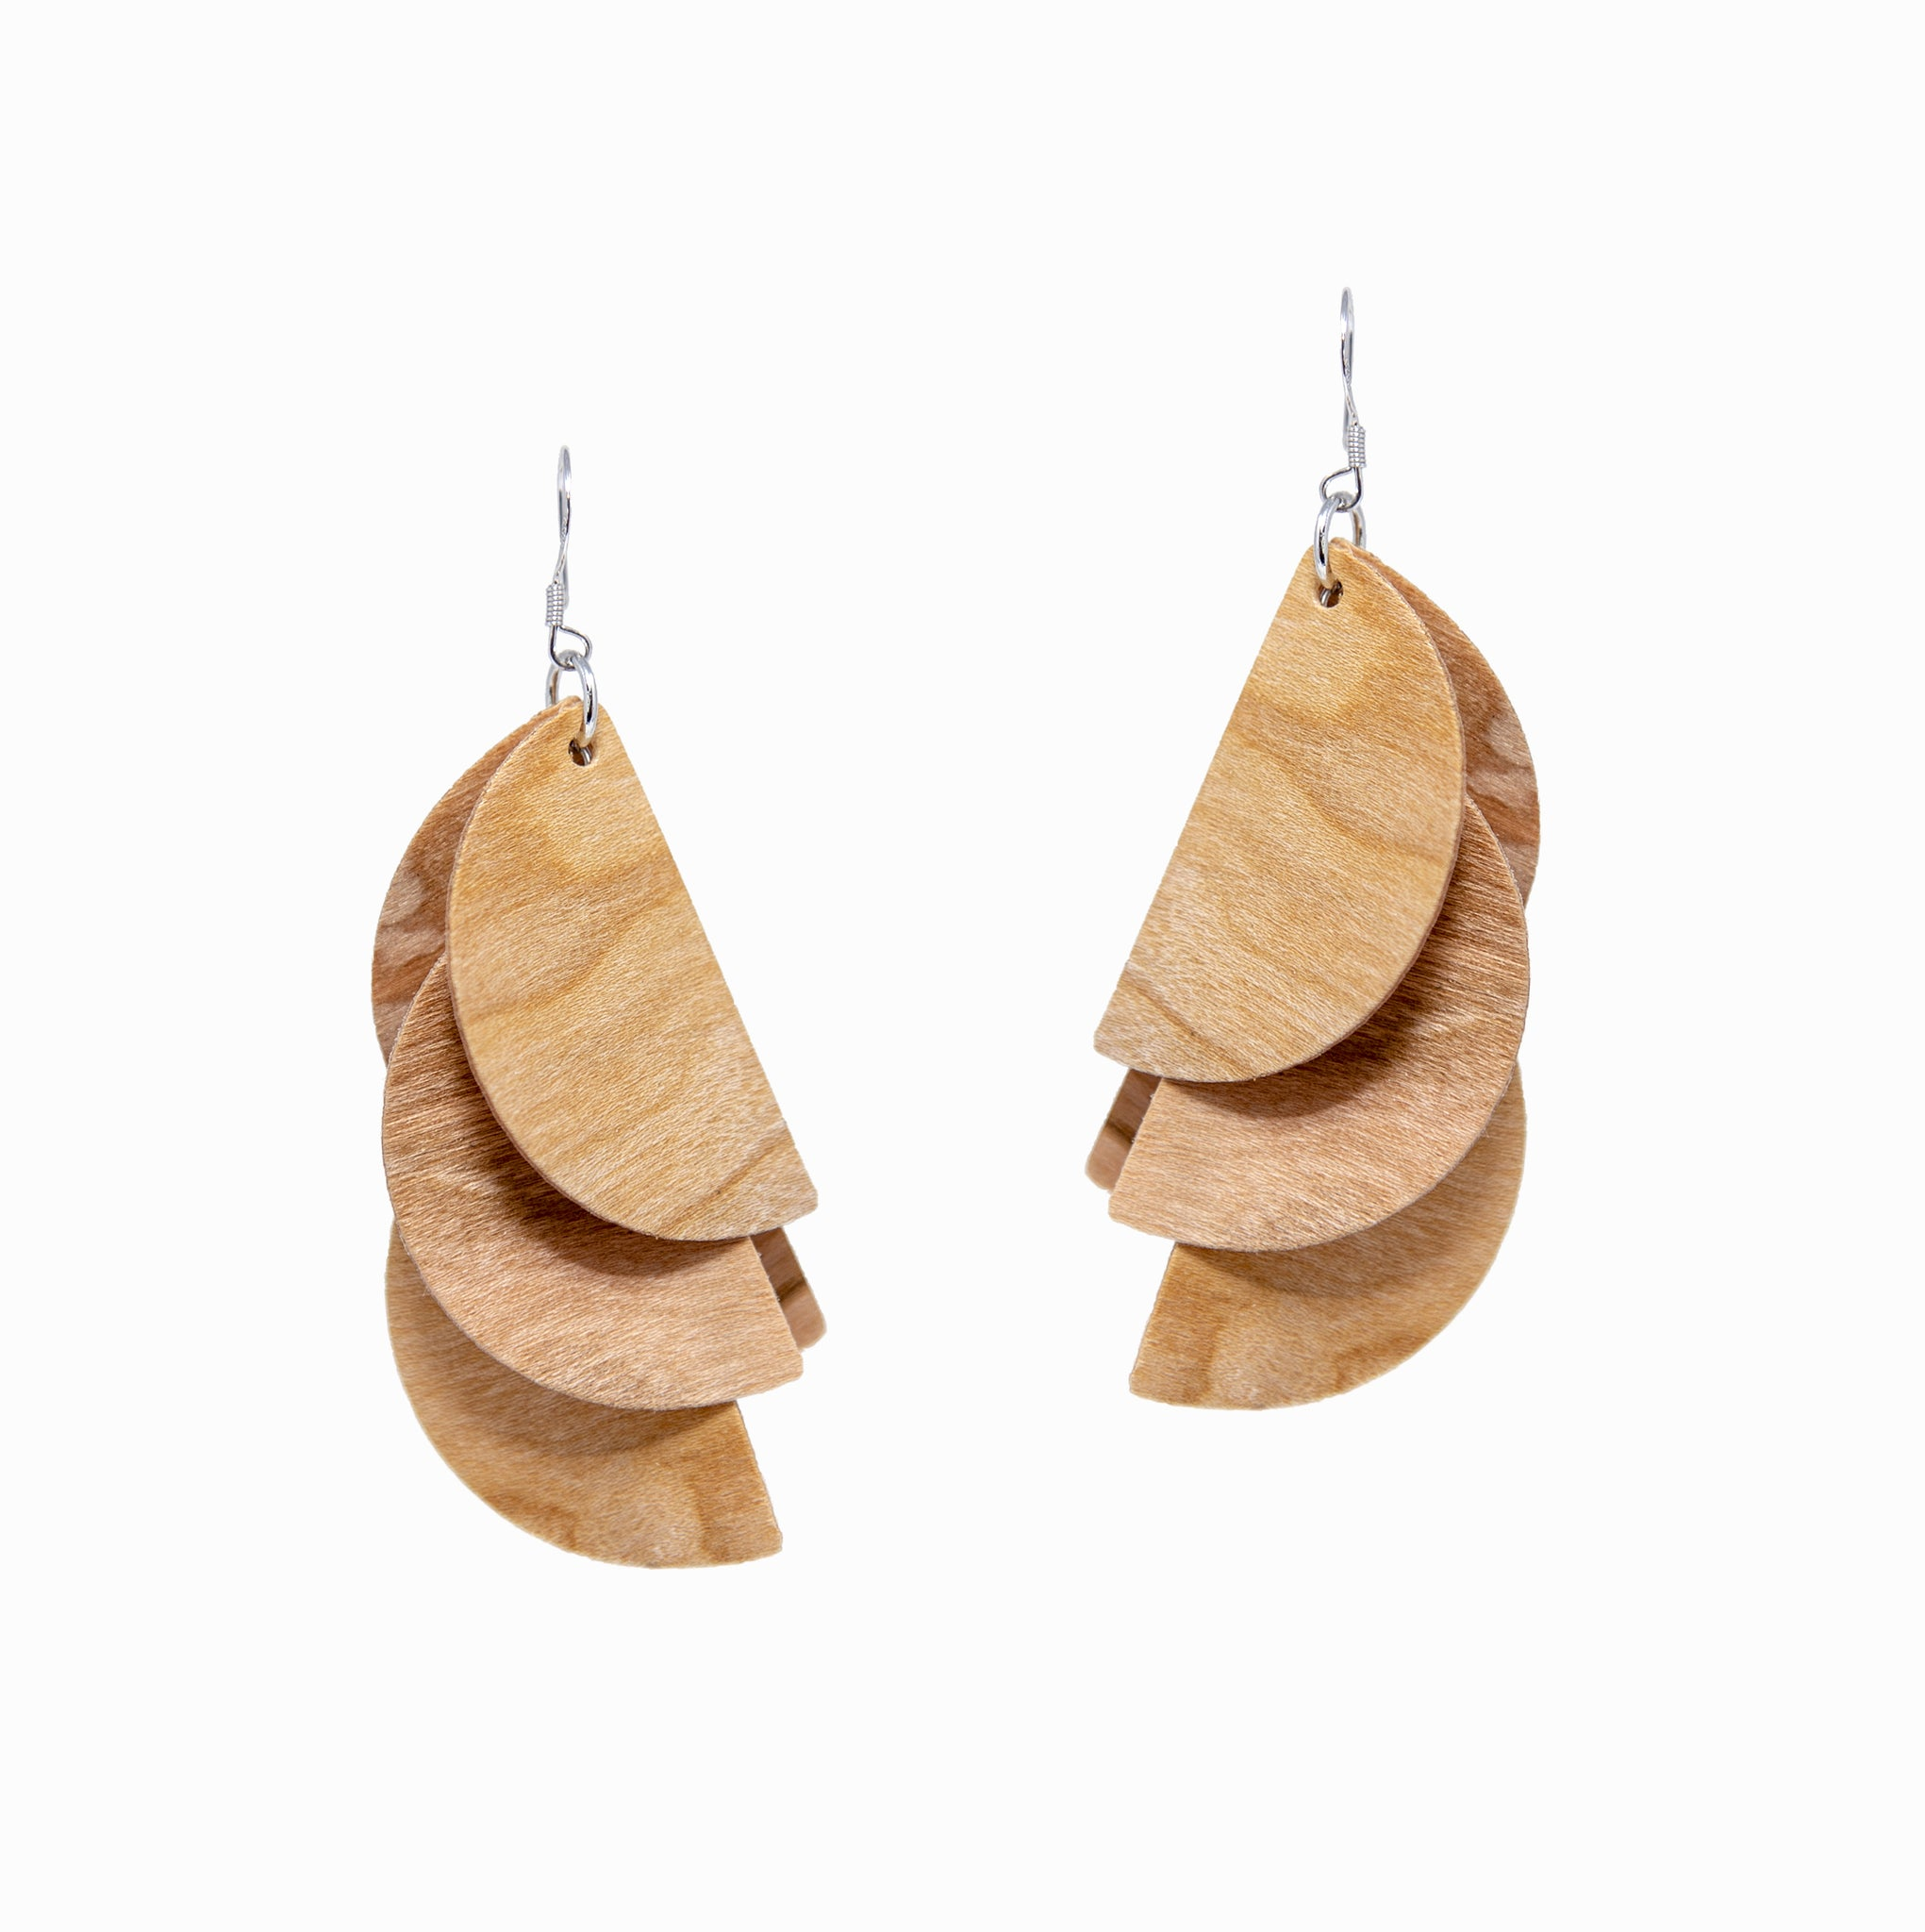 Madeline Earrings | Natural Wood - A R A M L E E ®